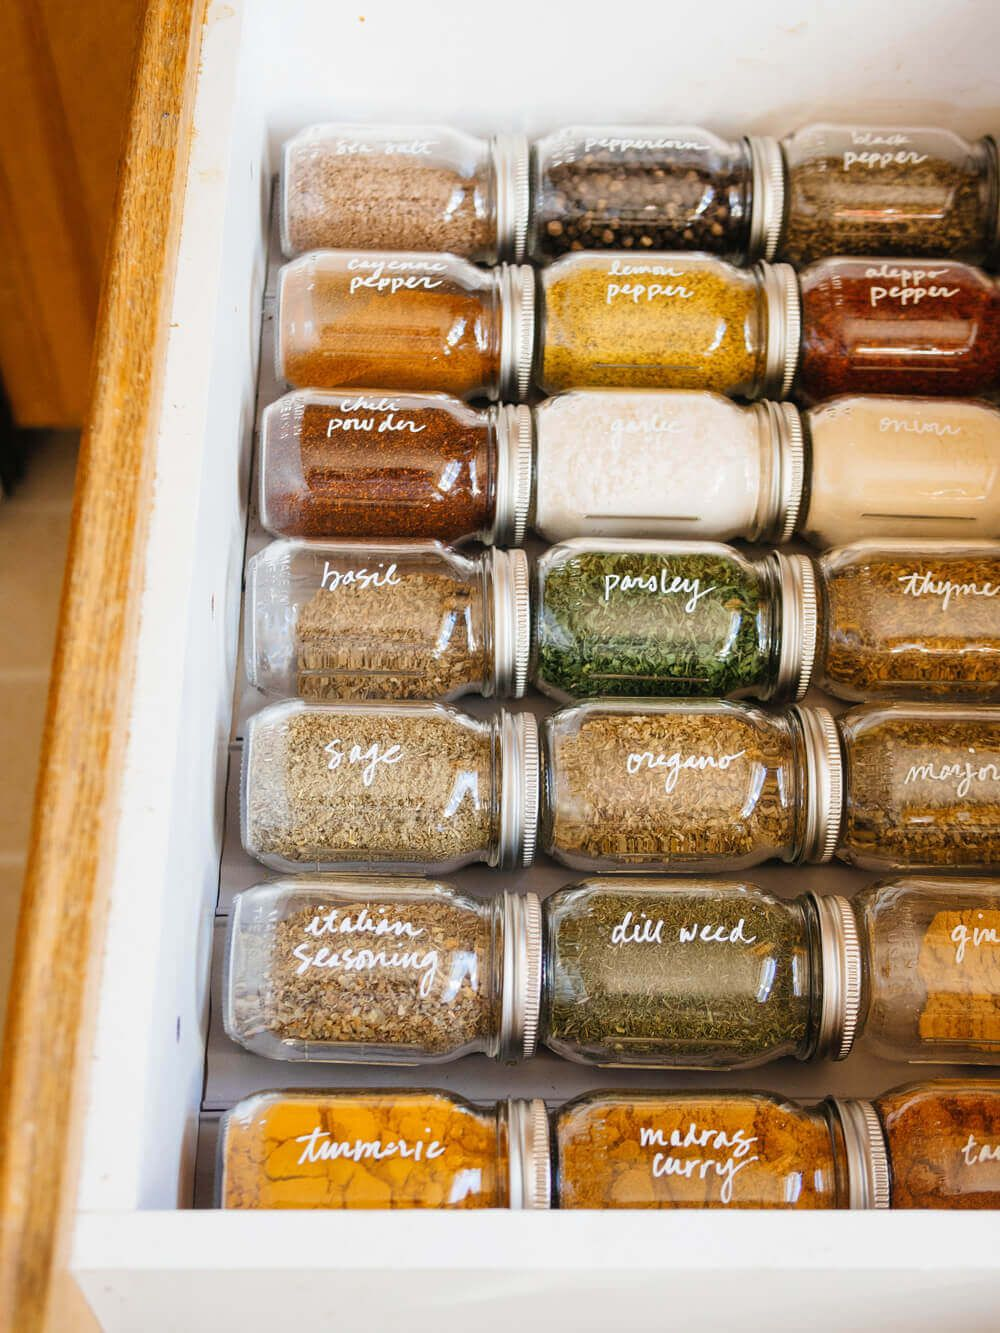 If you struggle to keep your spices organized and within easy reach, let my DIY spice drawer organization inspire you to take charge of that kitchen clutter. It's a simple, efficient, and attractive system for storing, labeling, and sorting 80-plus spice bottles, jars, tubs, and tins in kitchen drawers.